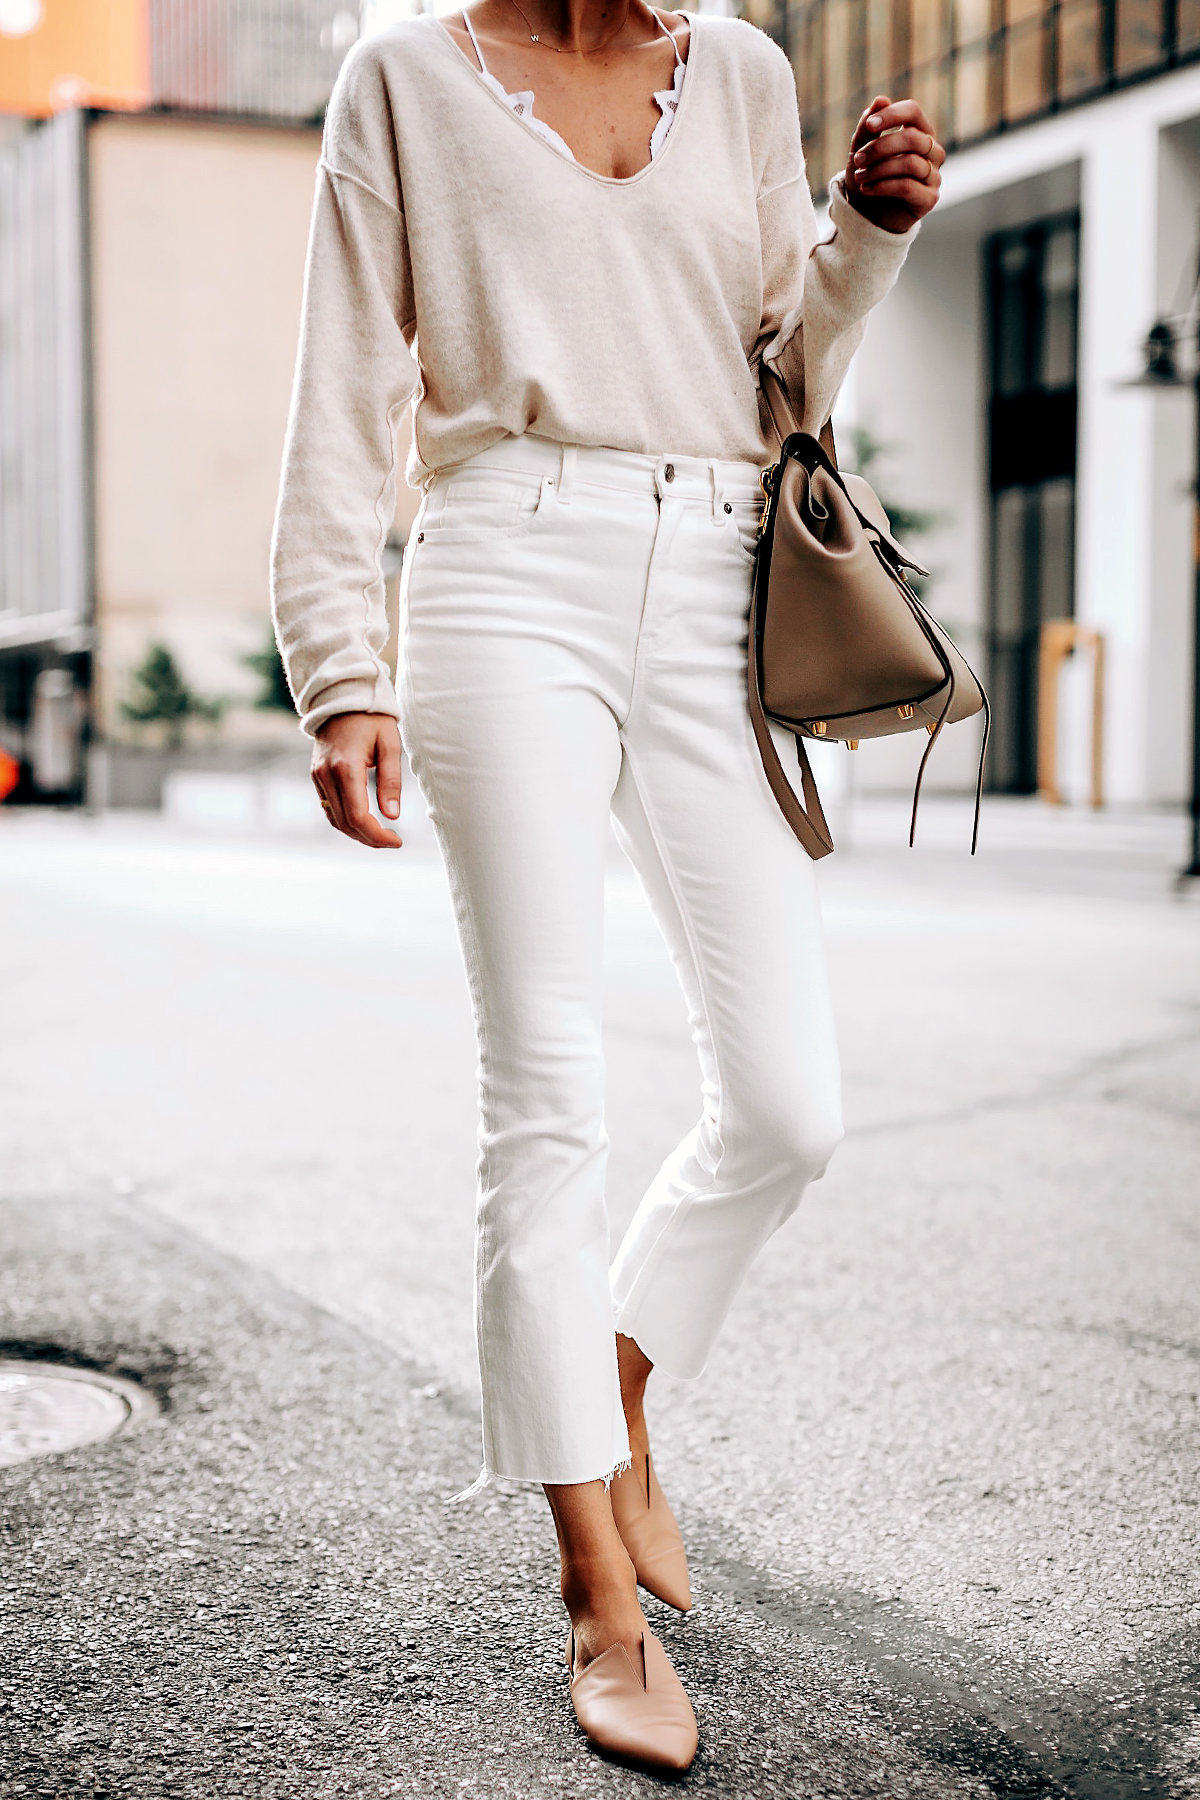 Woman Wearing Free People Ivory Cashmere Sweater White Lace Bralette Everlane White Cropped Jeans Vince Blush Flats Celine Mini Belt Bag Fashion Jackson San Diego Fashion Blogger Street Style